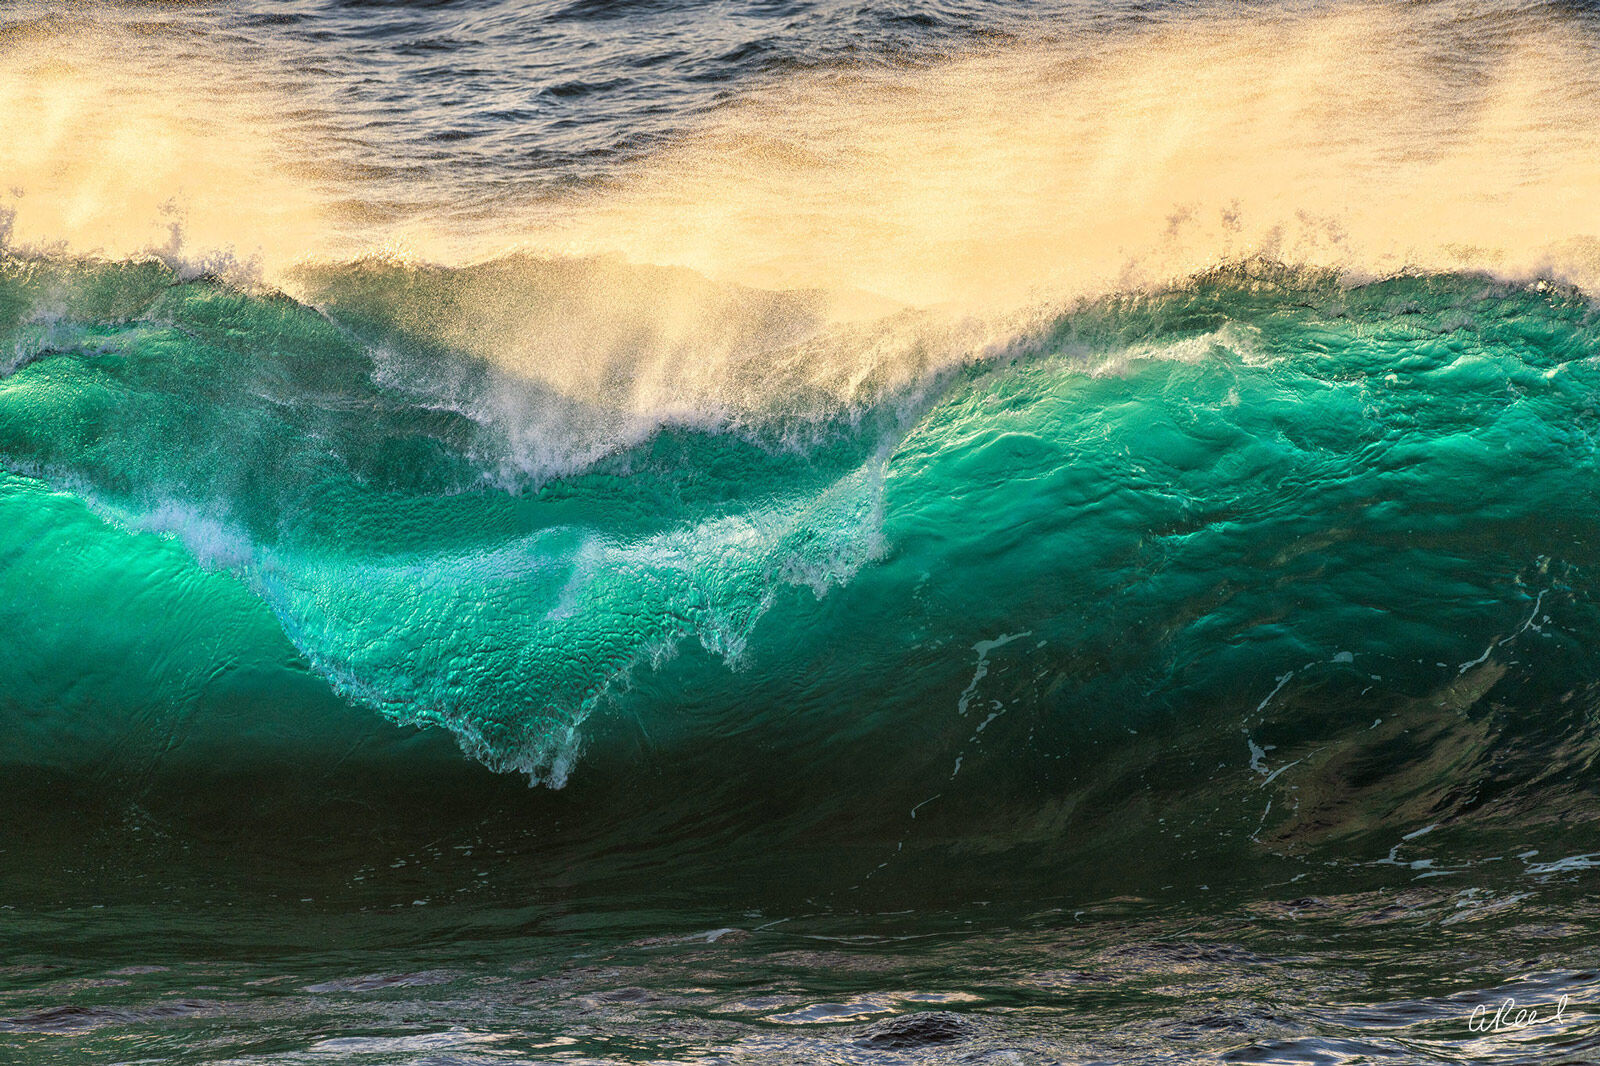 Emerald Ocean Wave In Bog Sur California. , photo